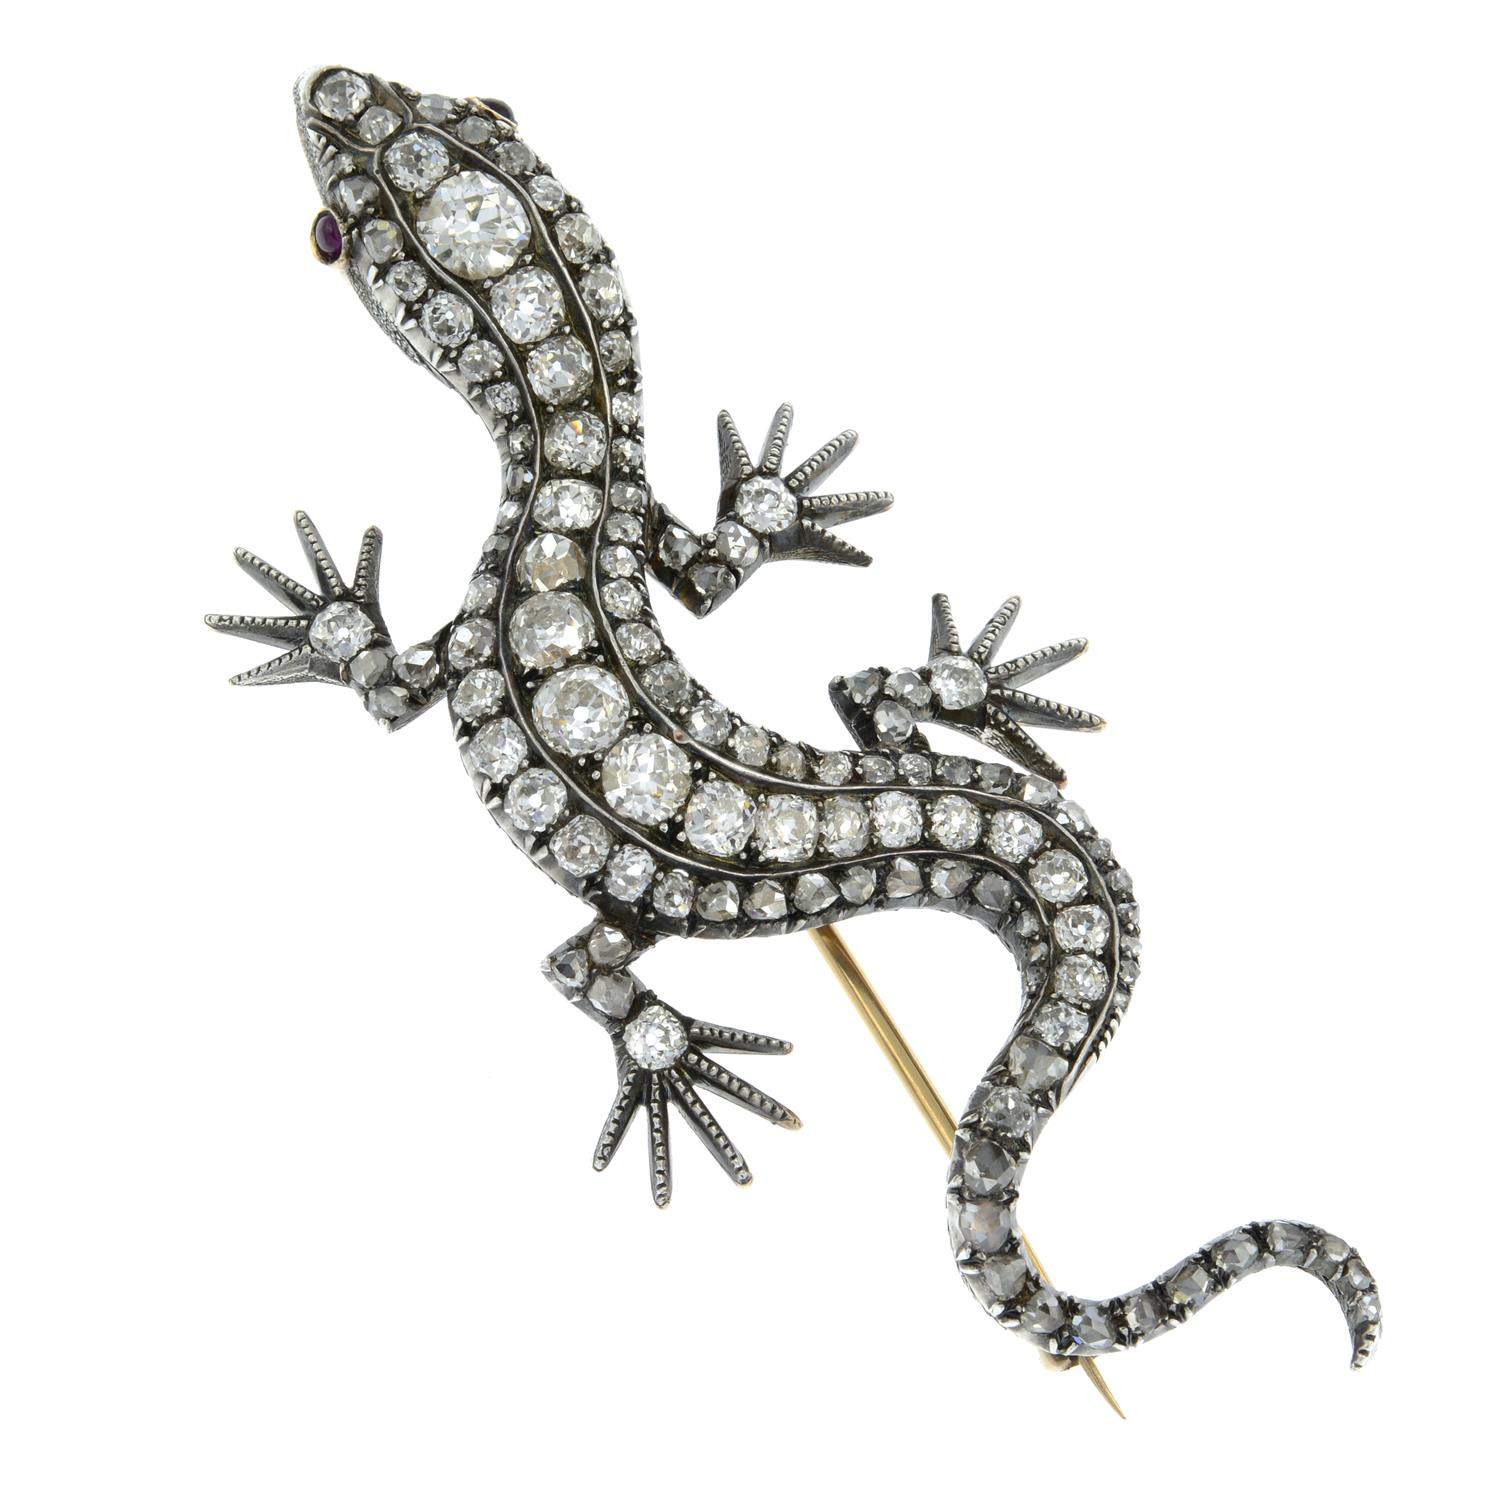 A Victorian silver and gold, old and rose-cut diamond salamander or lizard brooch. - Image 2 of 4